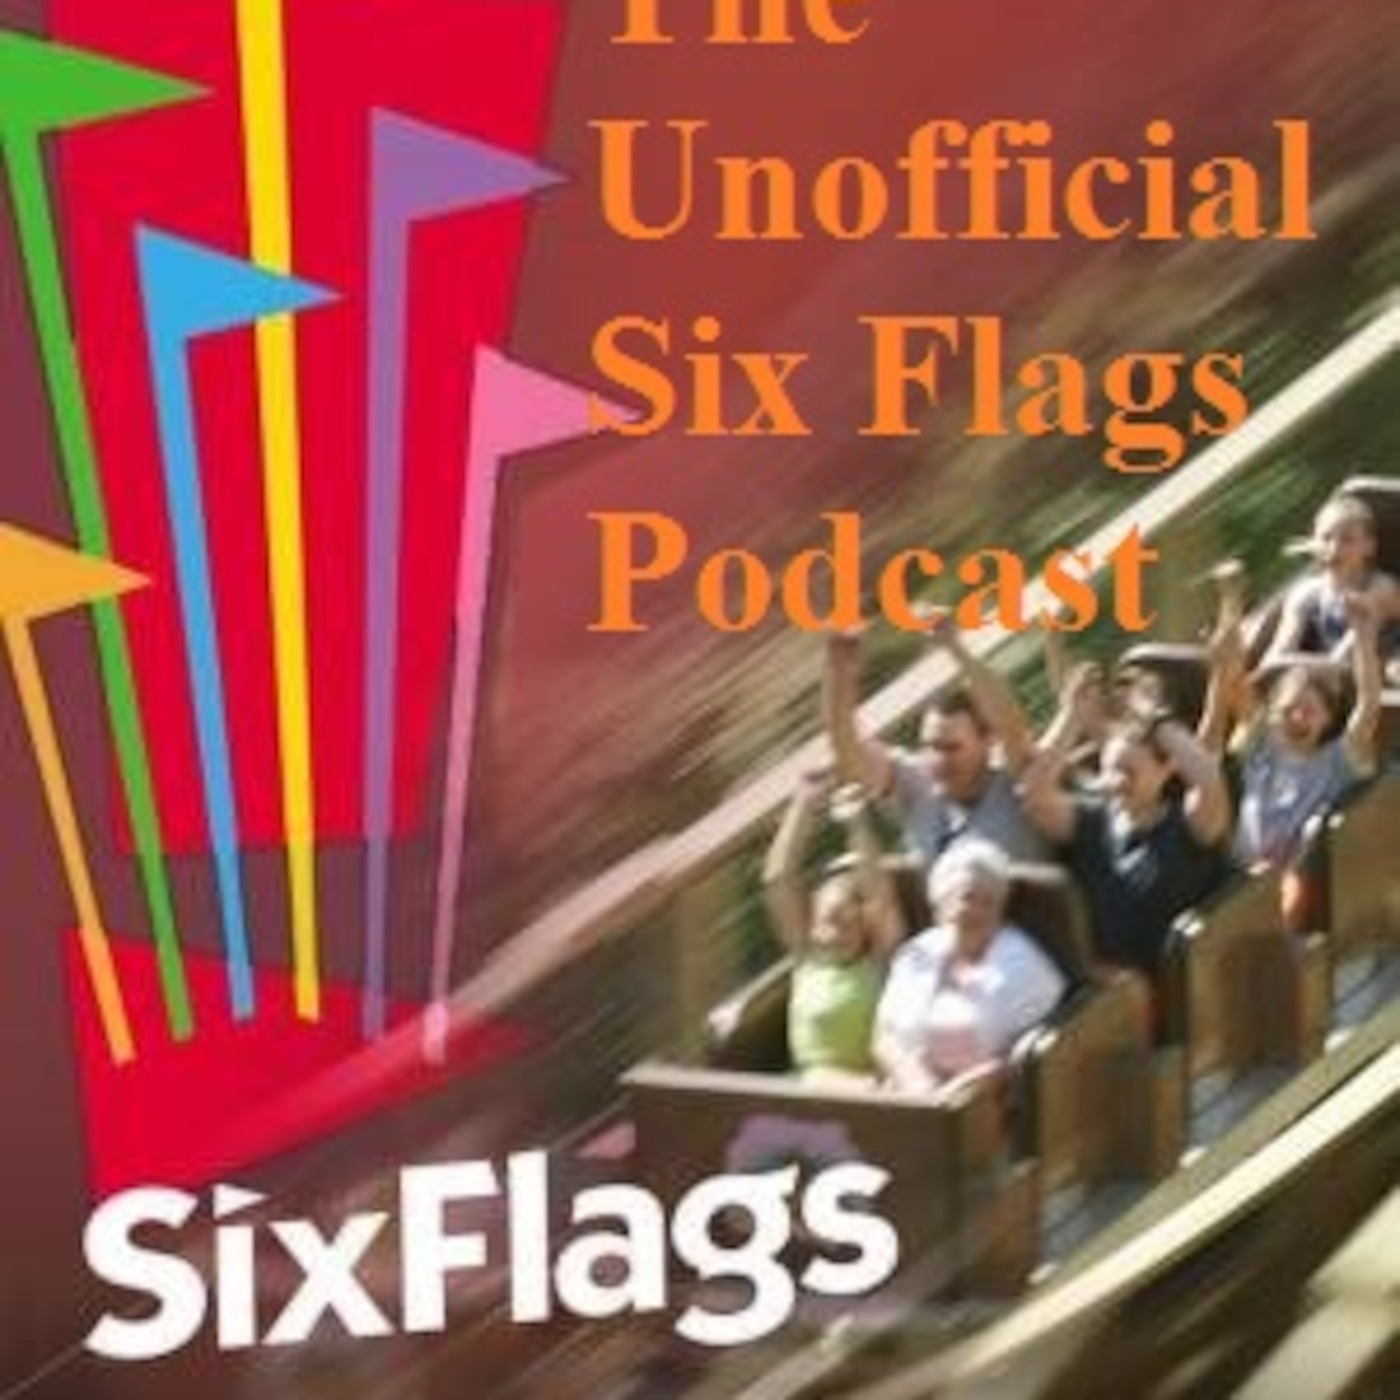 theunofficialsixflagspodcast's Podcast